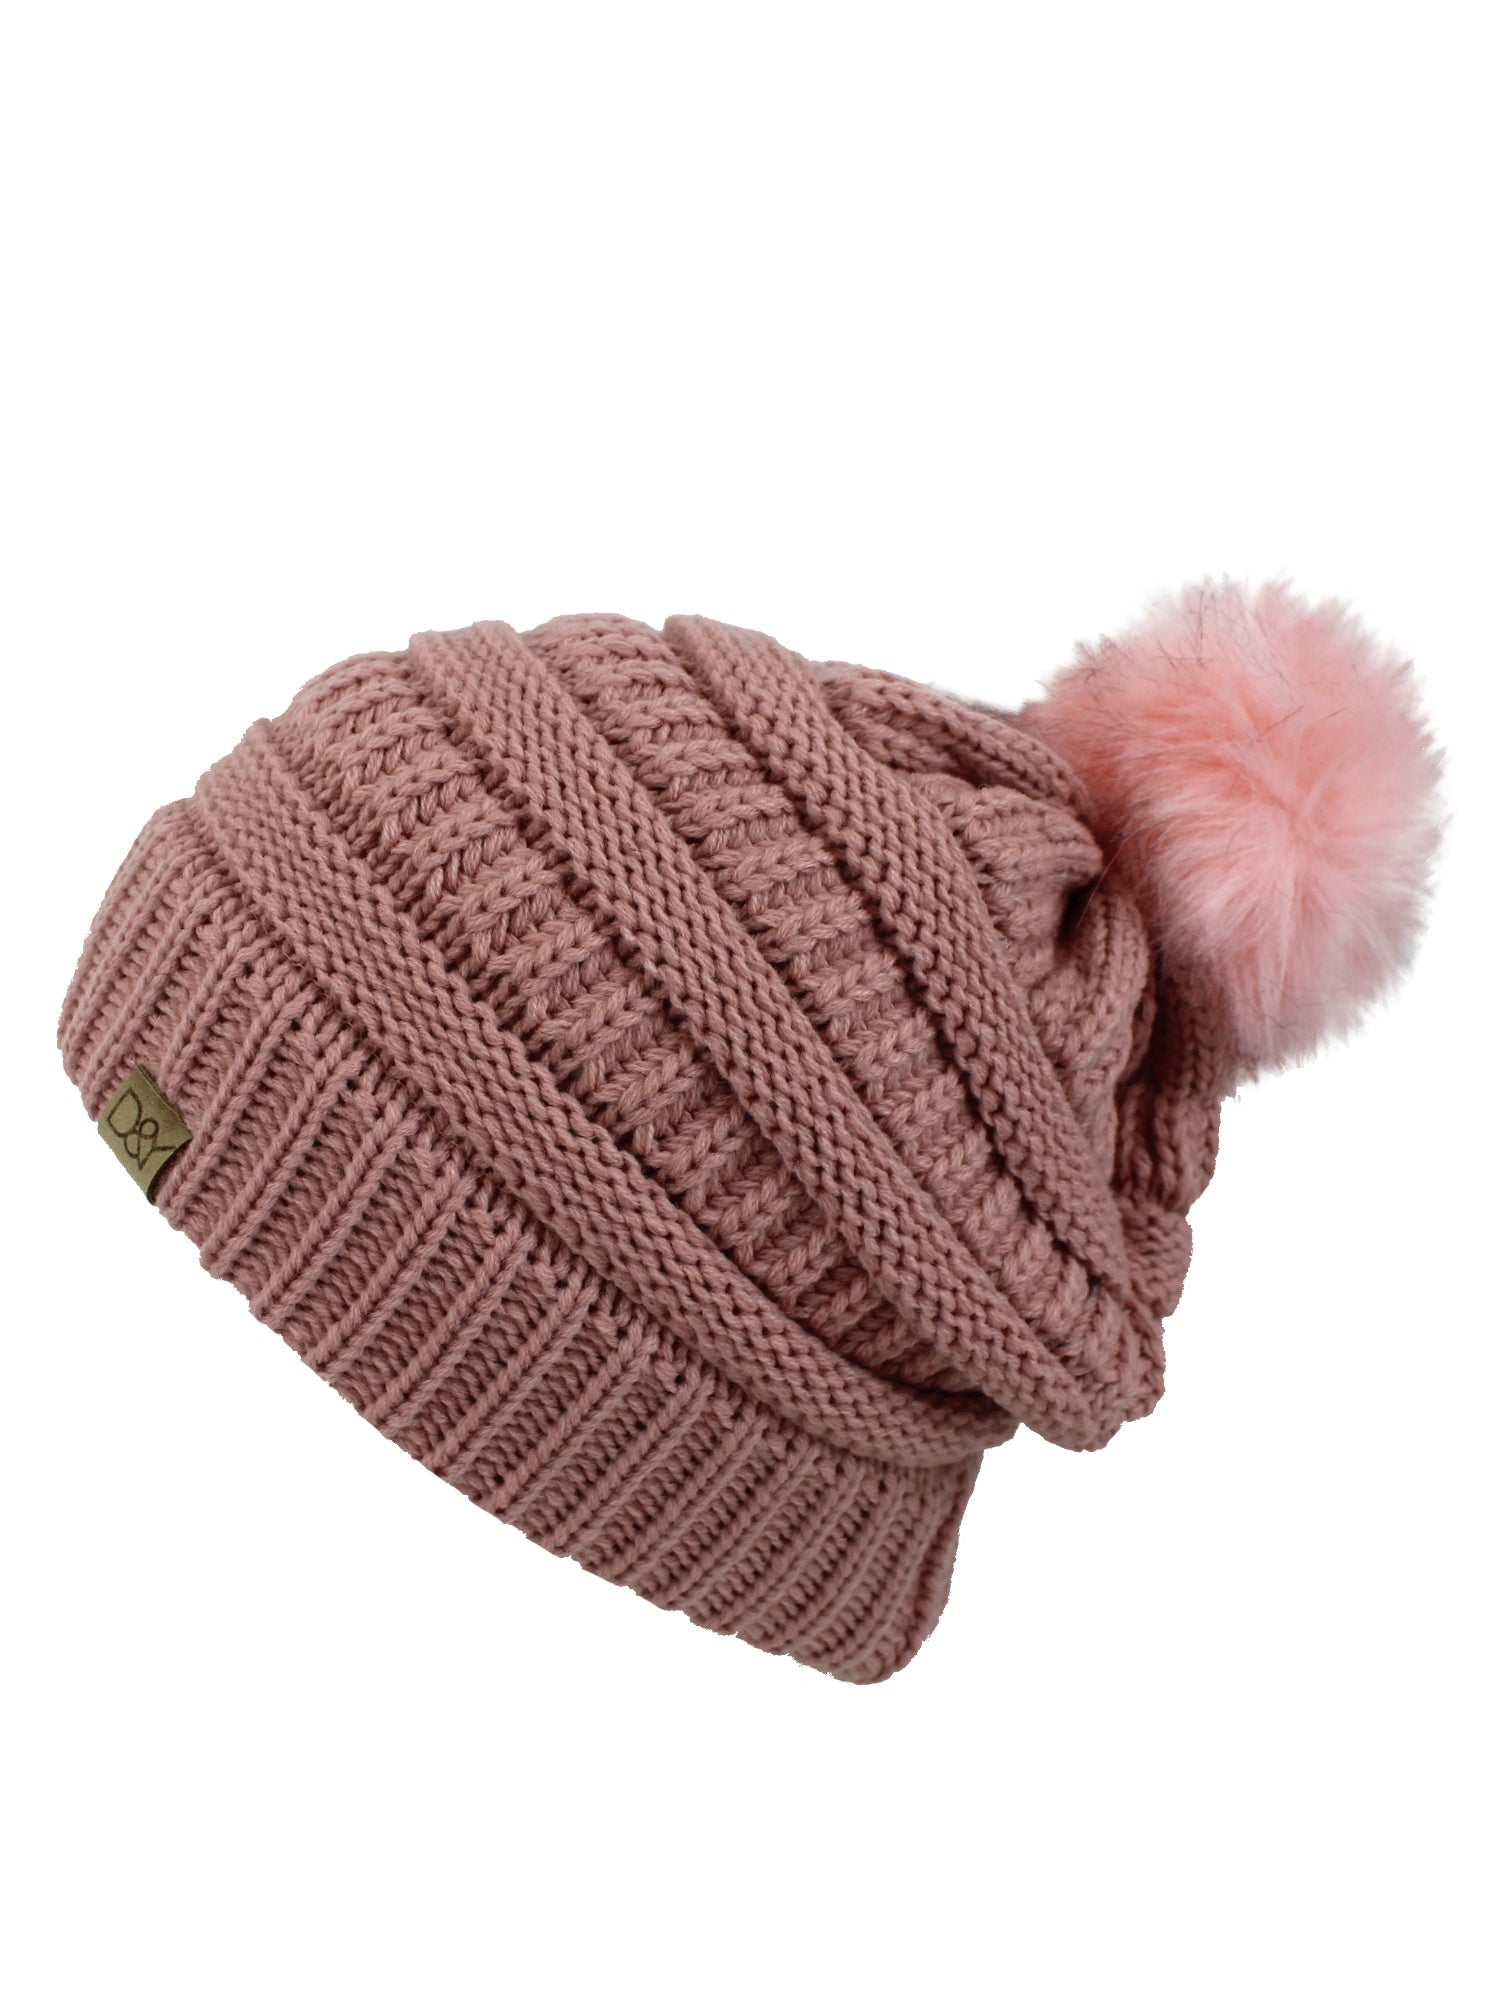 Blush Pink Halo Ribbed Slouch Hat With Fur Pom Pom